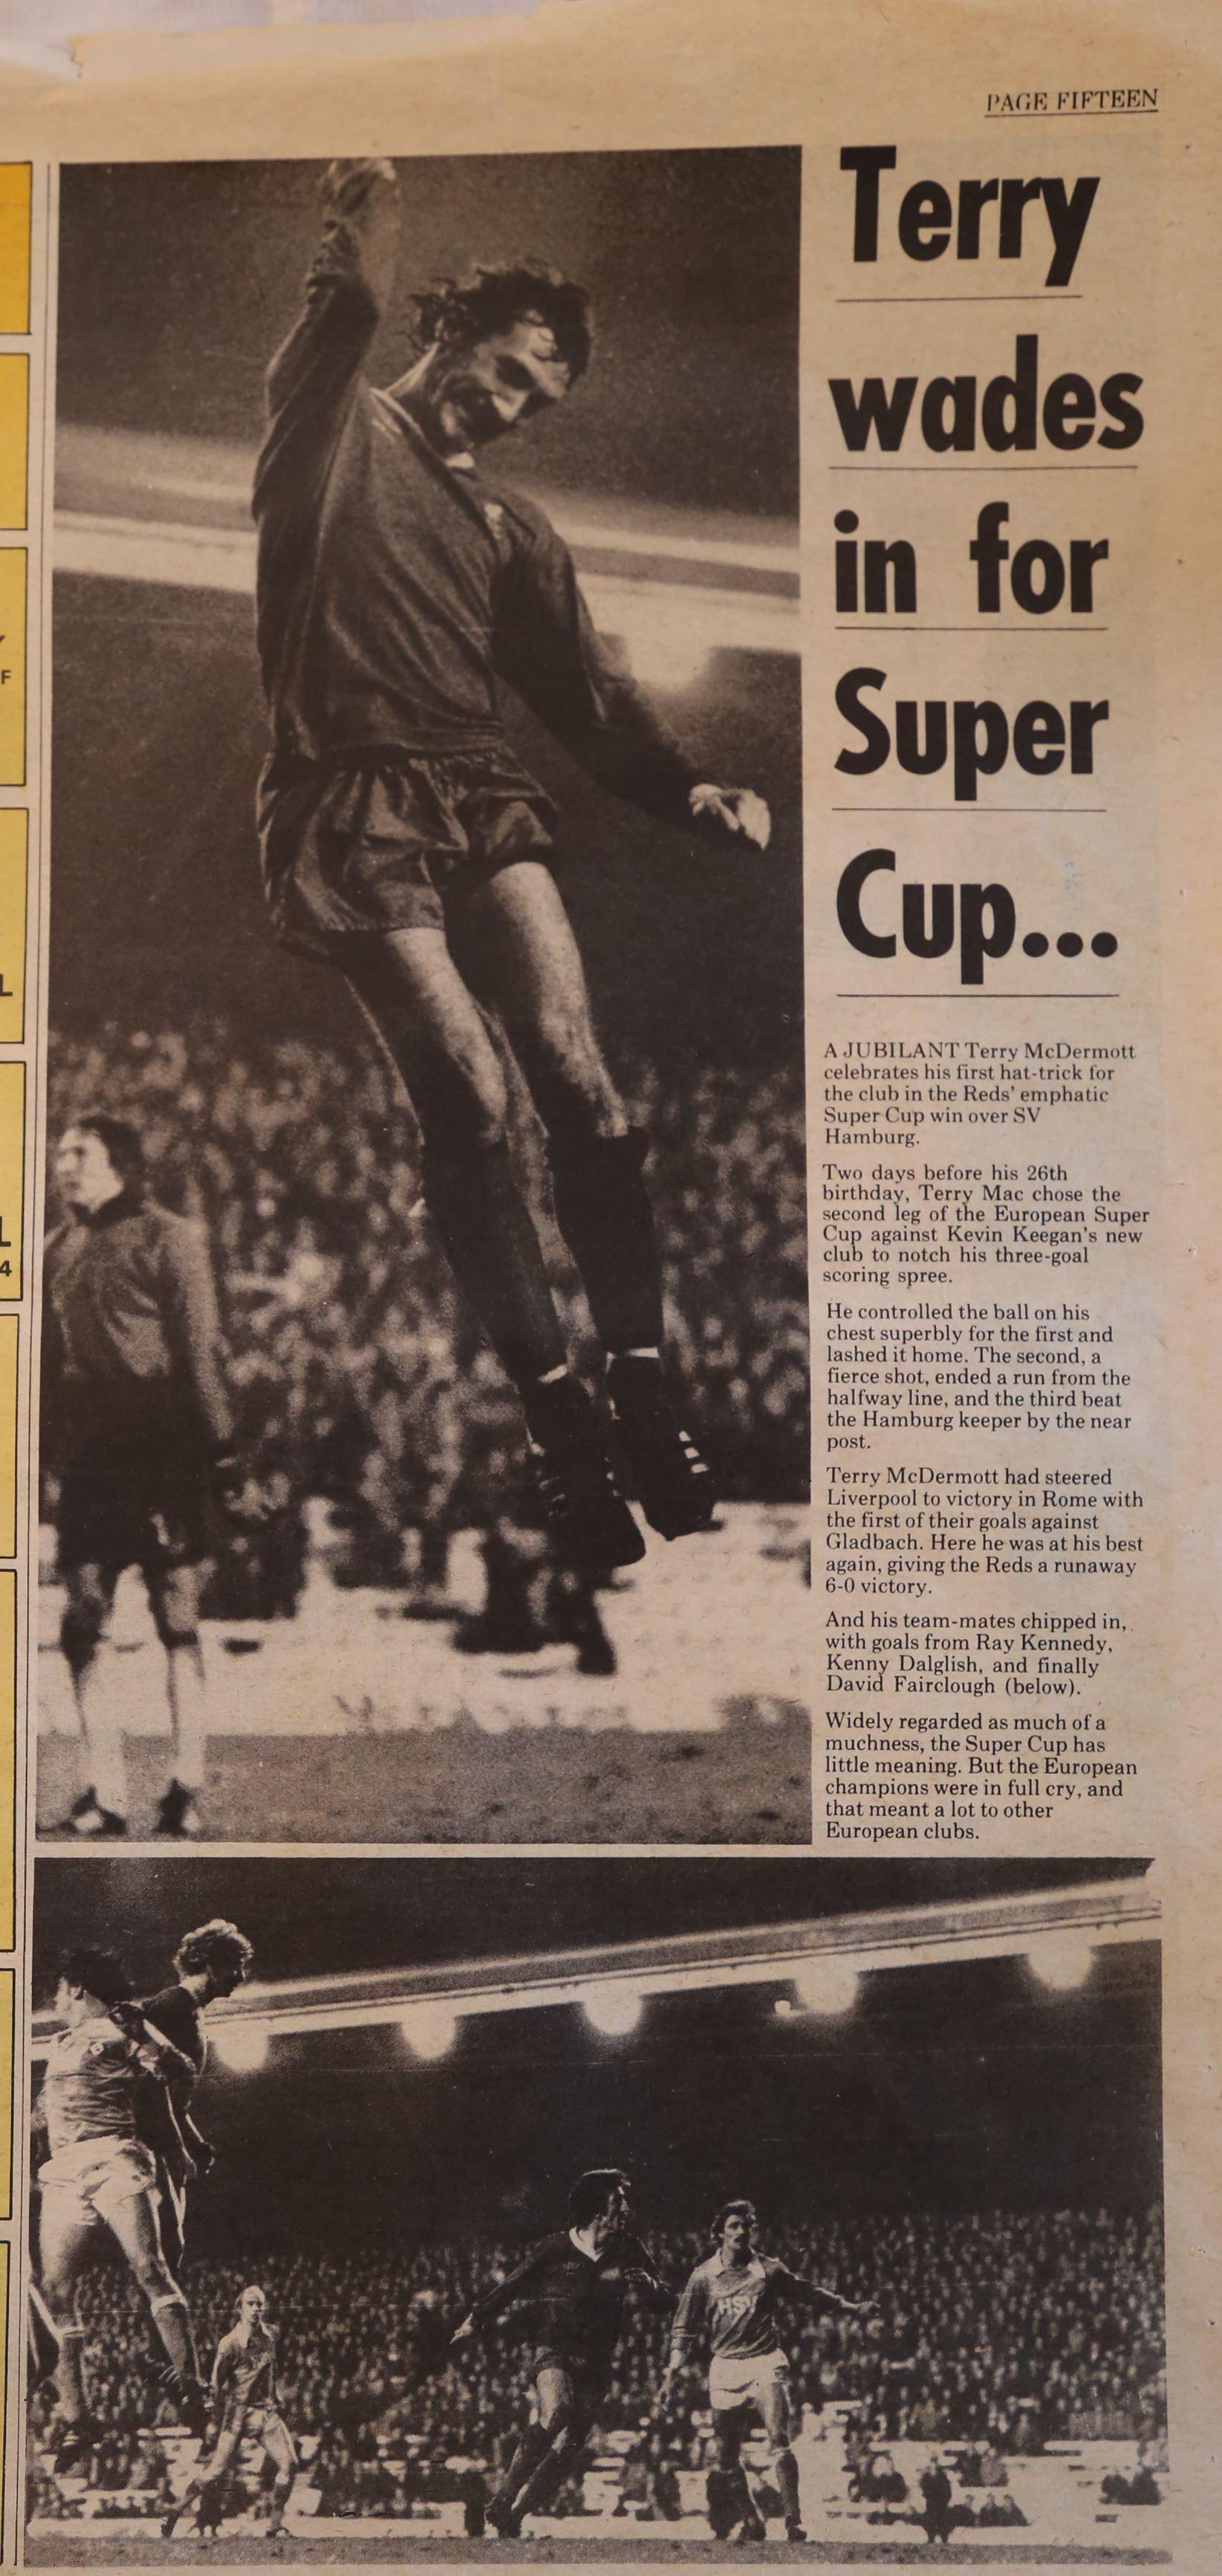 Terry wades in for the Super Cup - 6 December 1977